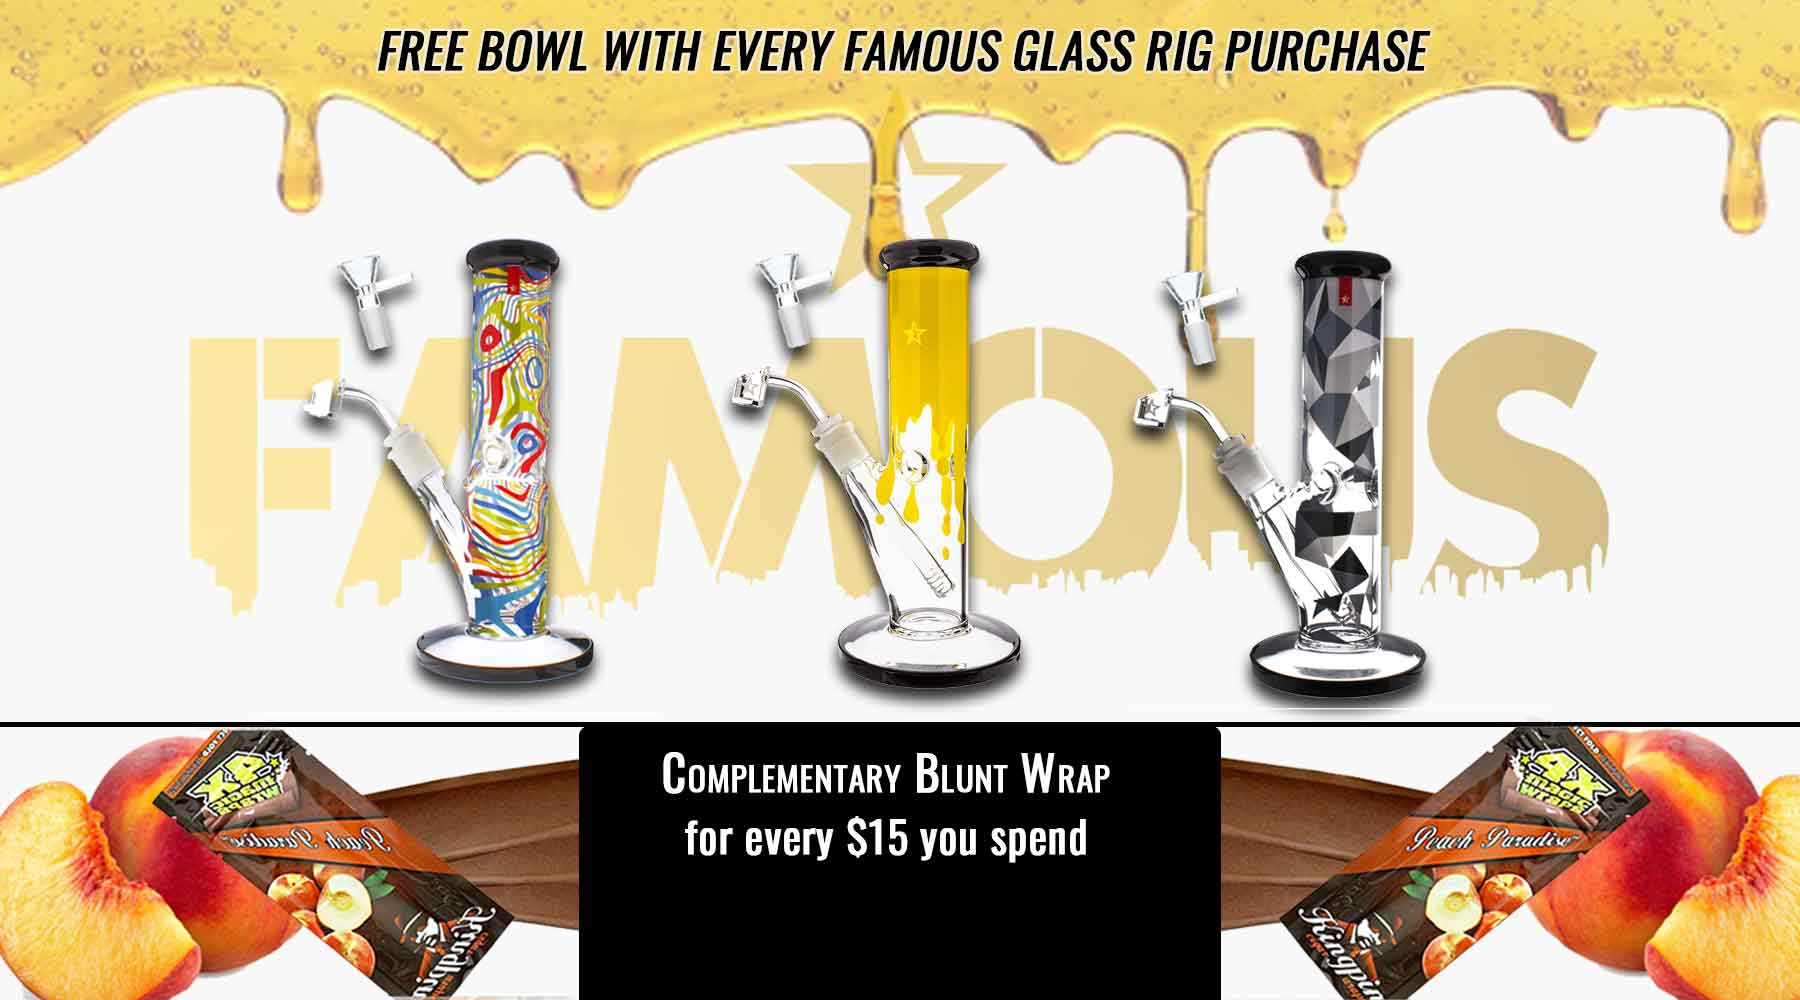 Famous Glass Free Bowl With Purchase Buy The Best Dab rigs Waterbedsnstuff